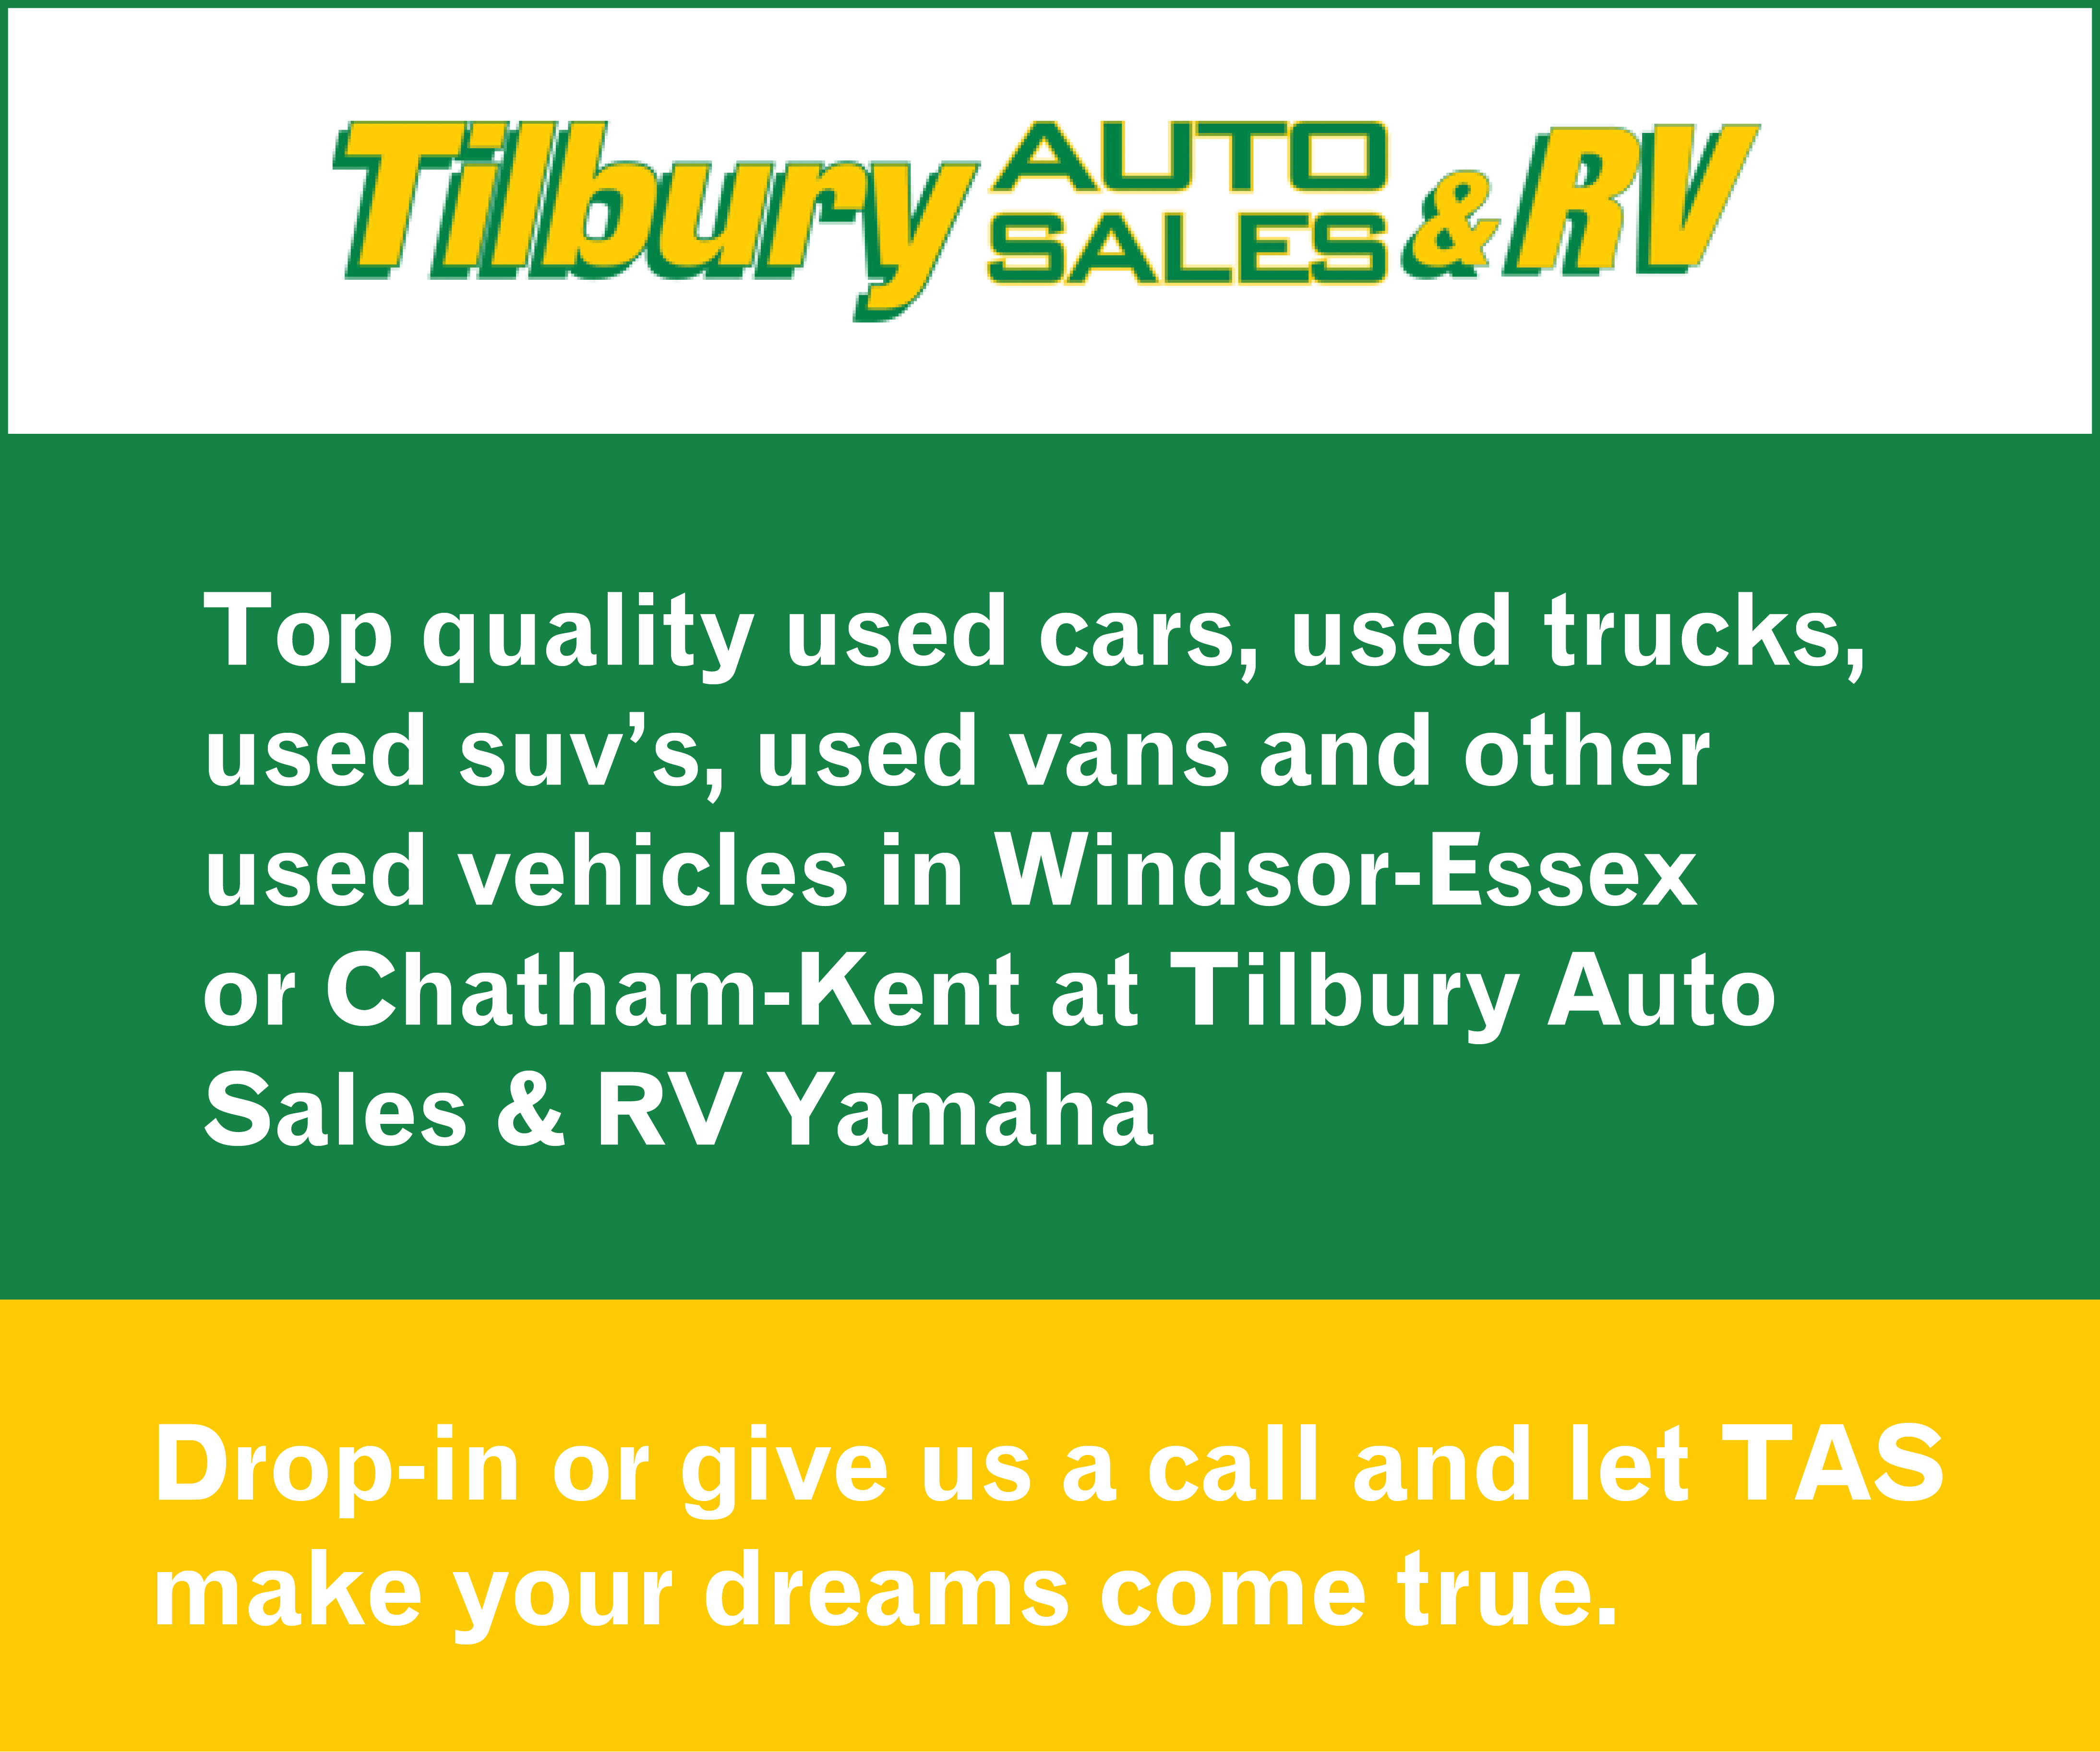 More from Tilbury Auto Sales & RV